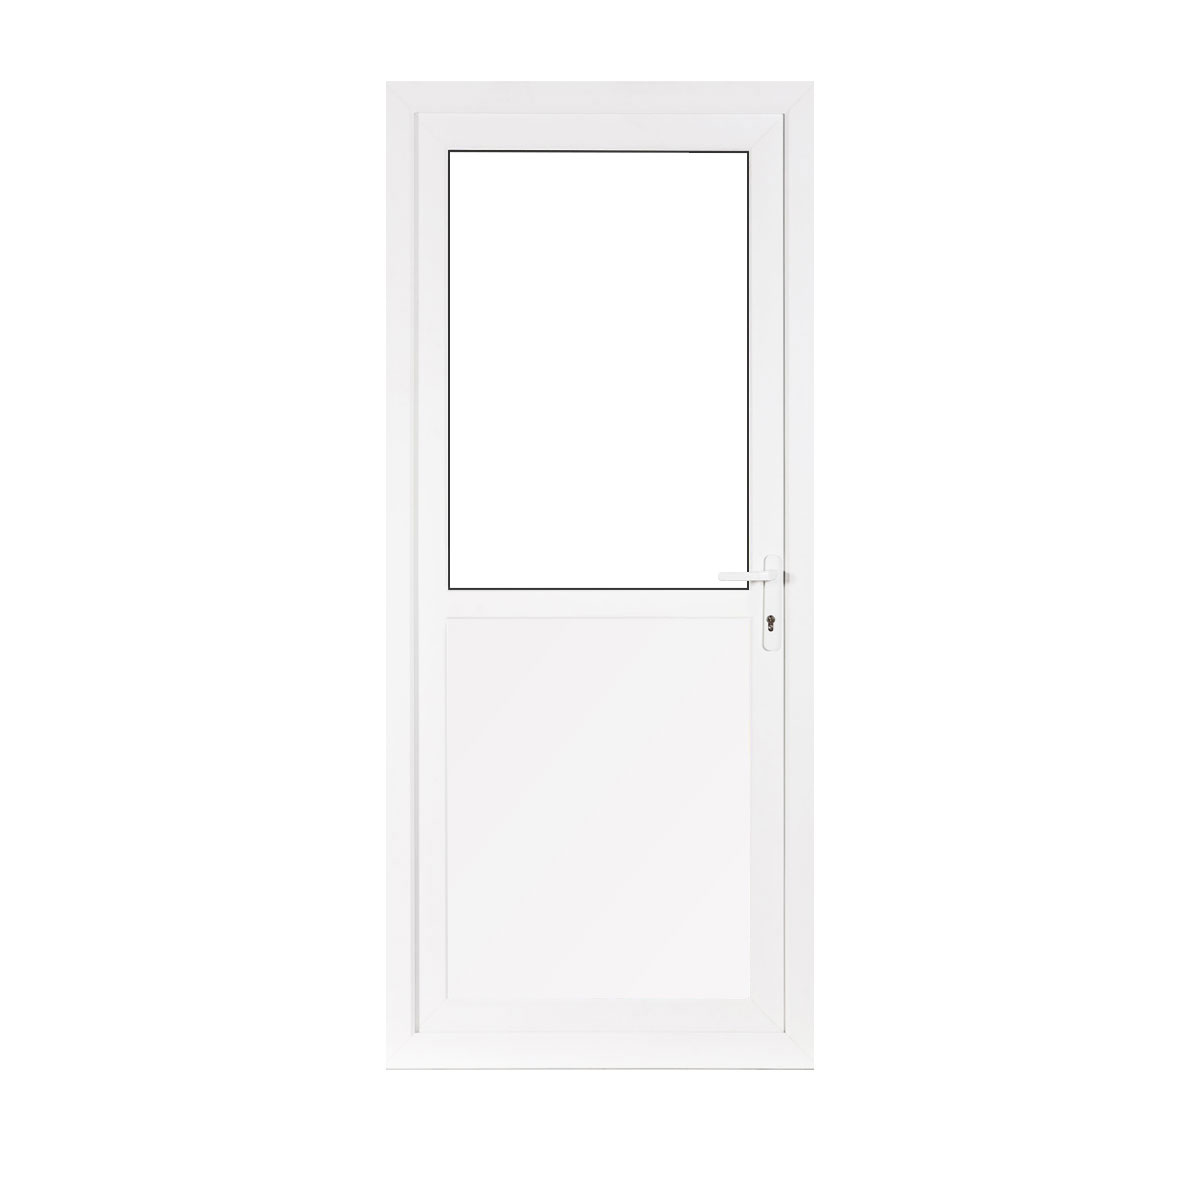 Half glass upvc back door flying doors for Upvc glass front doors